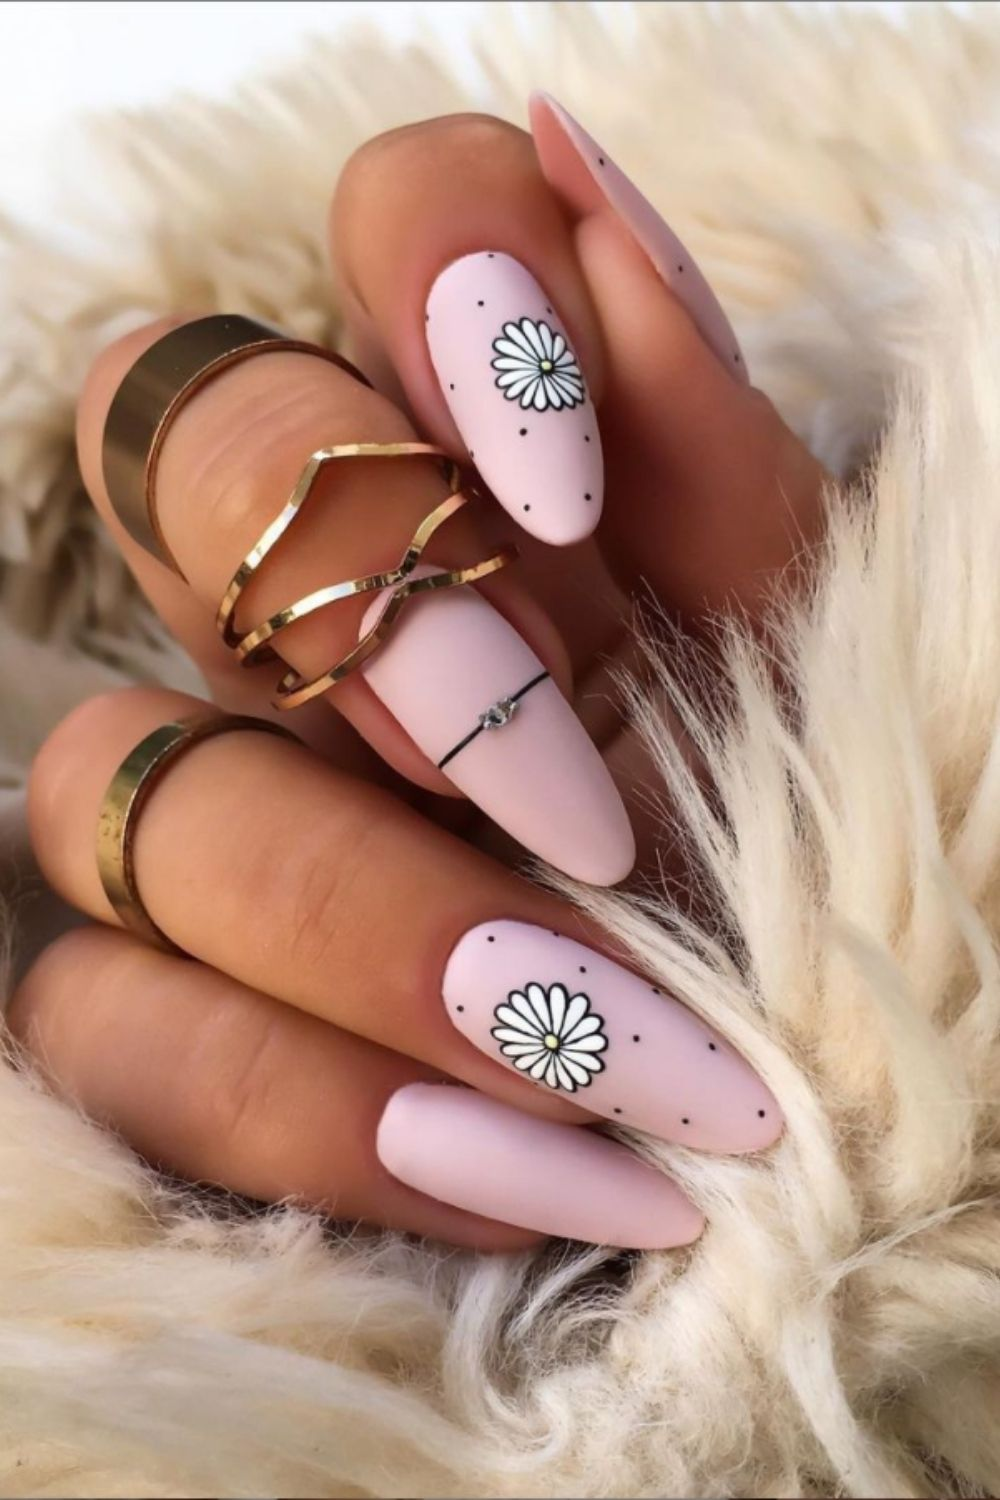 Pink almond-shaped nail with daisy